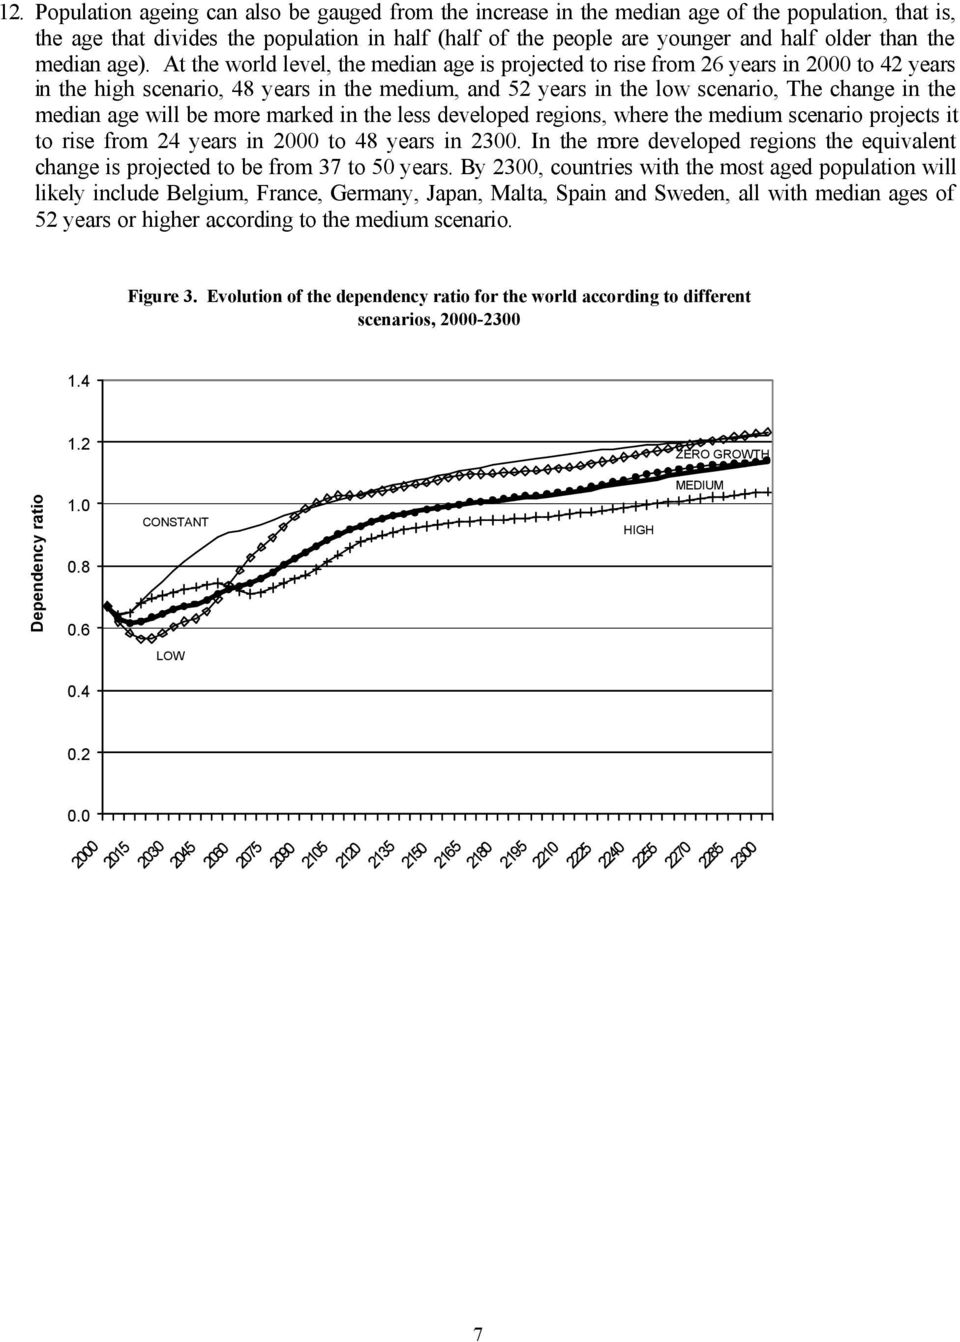 At the world level, the median age is projected to rise from 26 years in 2000 to 42 years in the high scenario, 48 years in the medium, and 52 years in the low scenario, The change in the median age